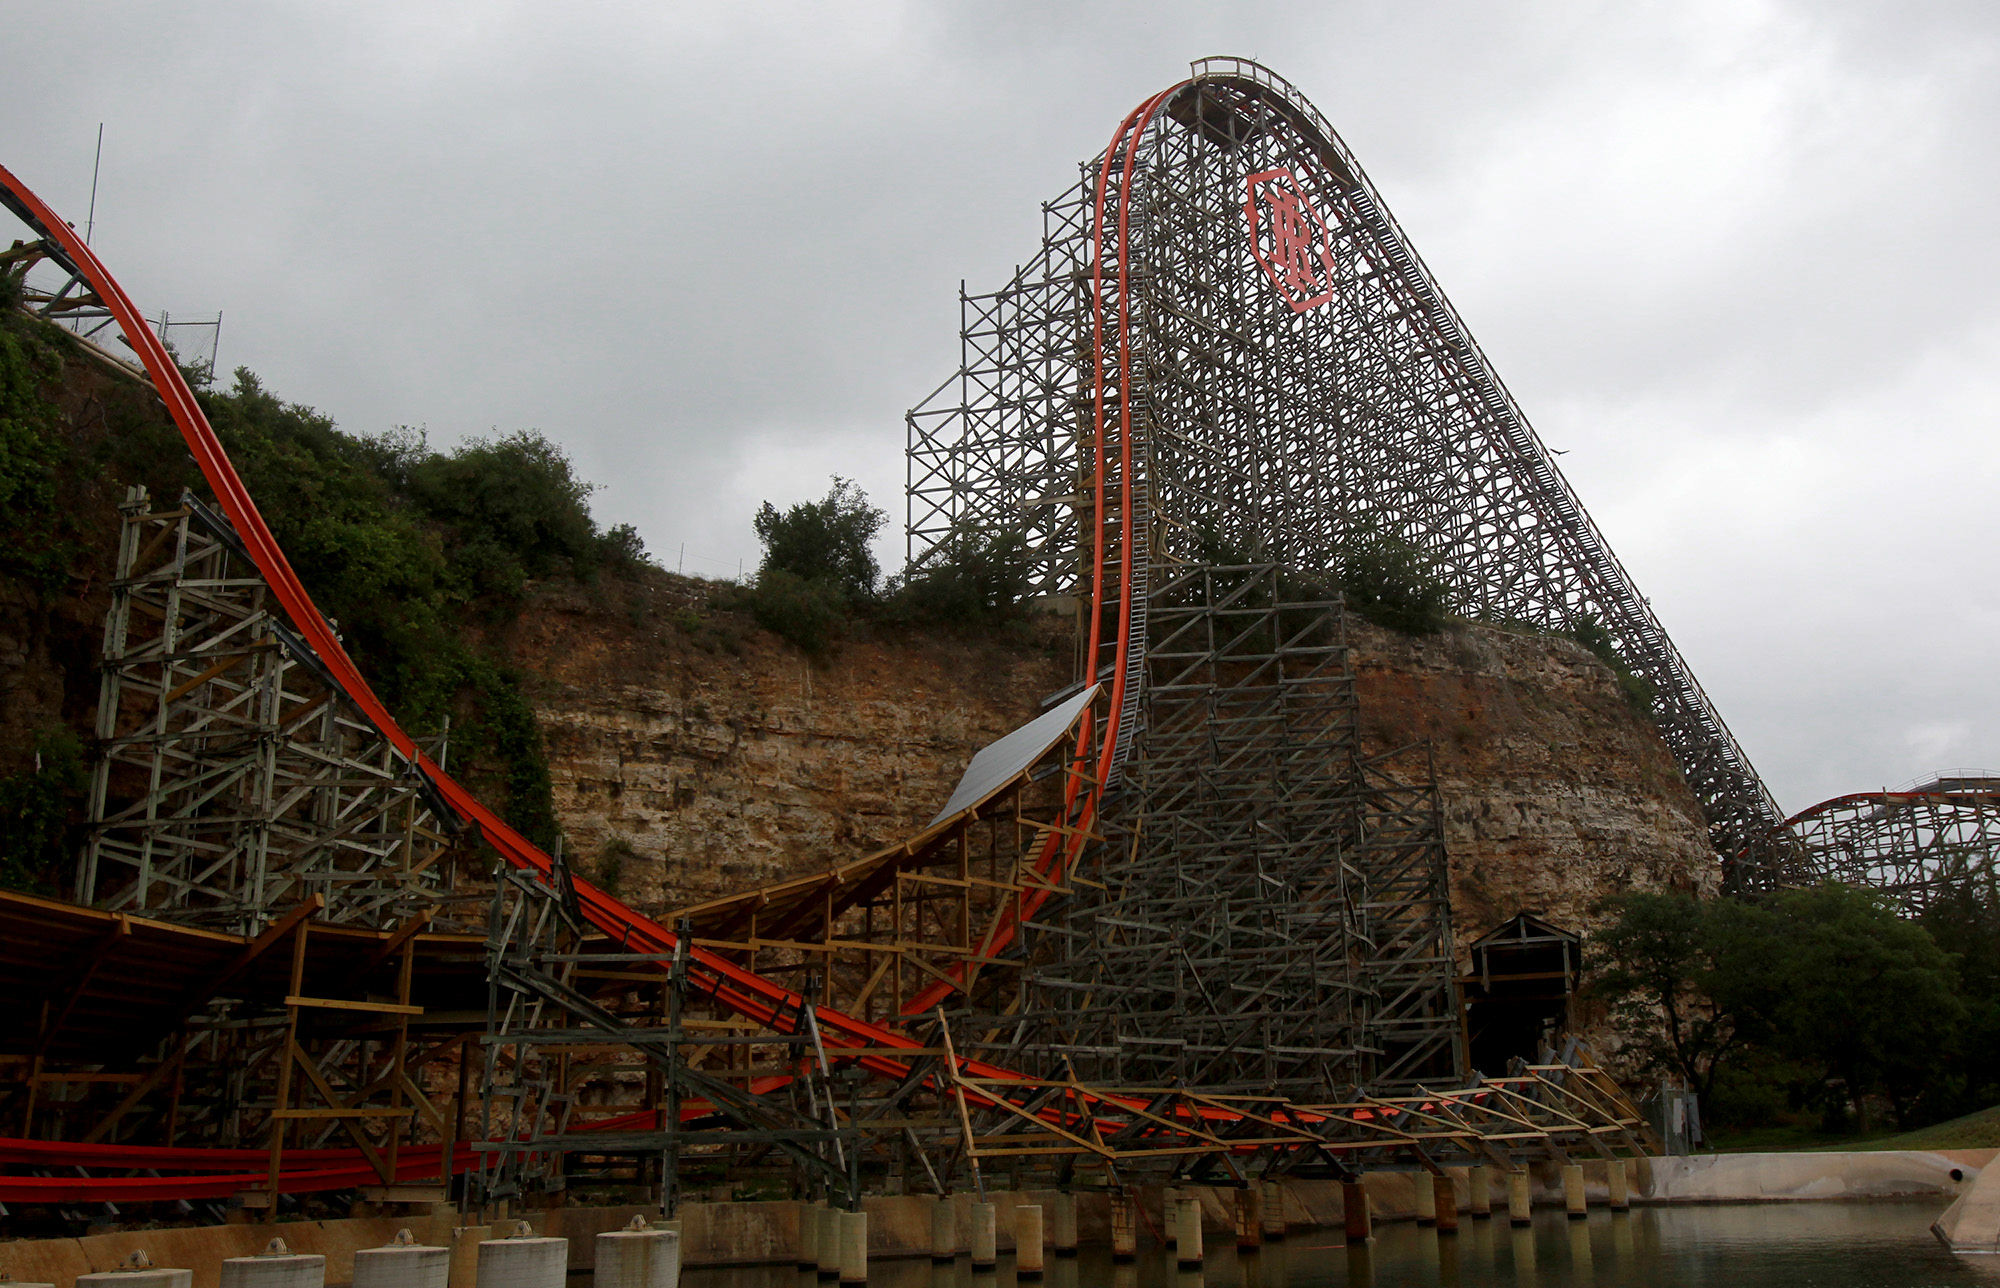 Fiesta Texas Visitors Have Mixed Reactions Over Iron